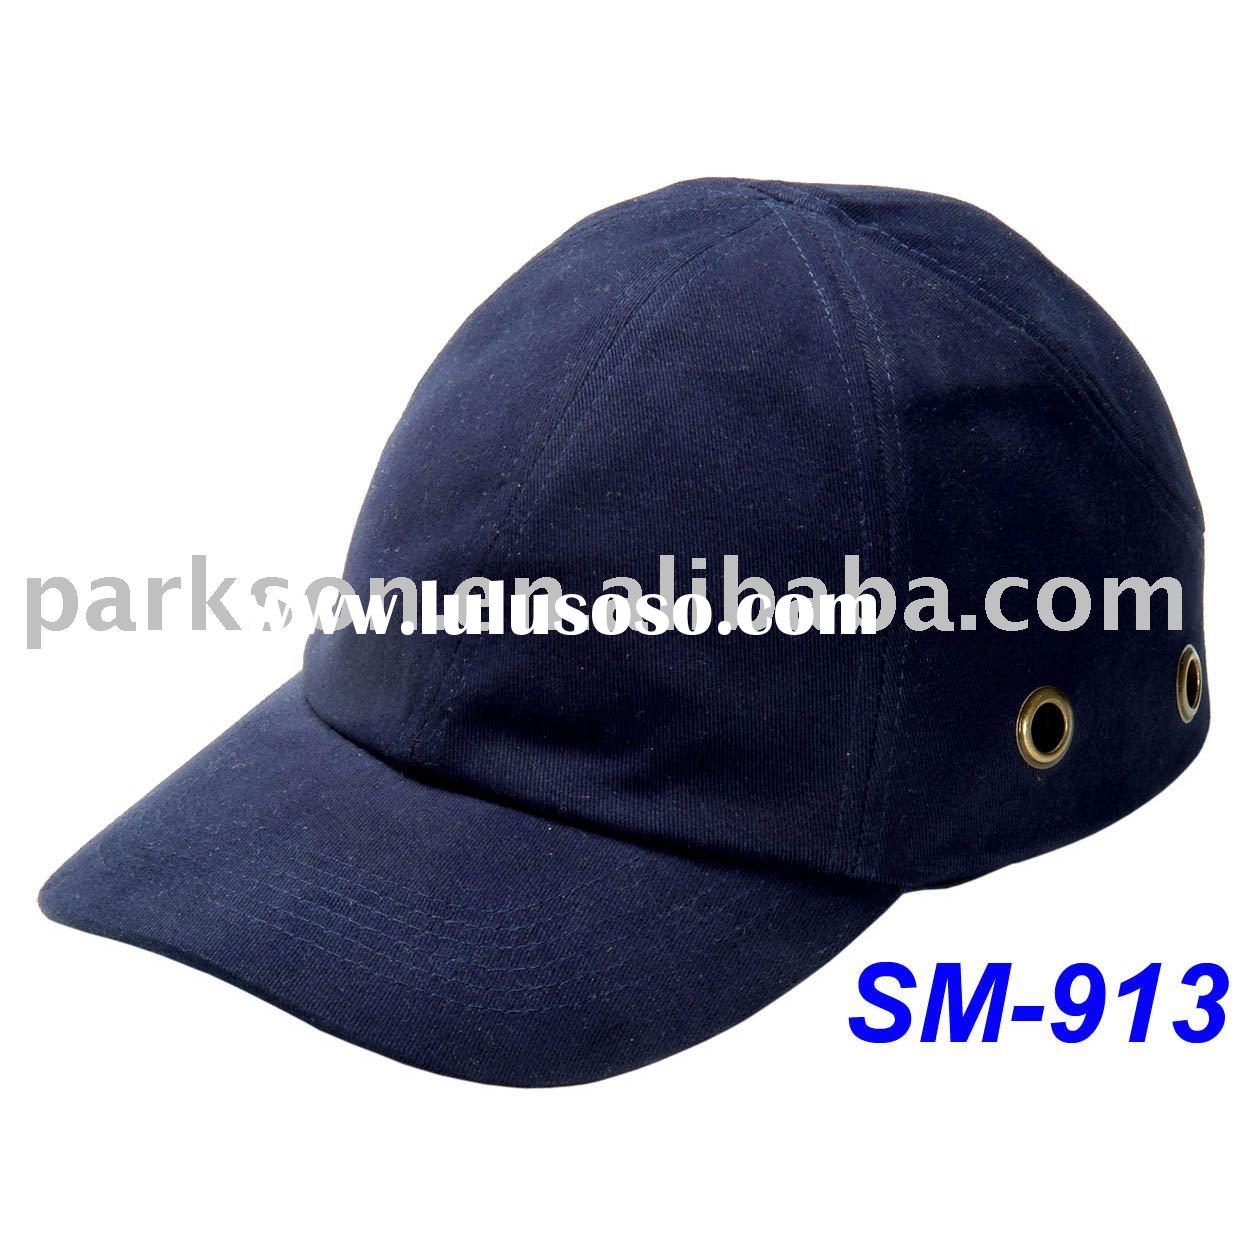 Sporting Cap,Safety Helmet, helmet, Work place helmet, working cap, head protection, baseball cap